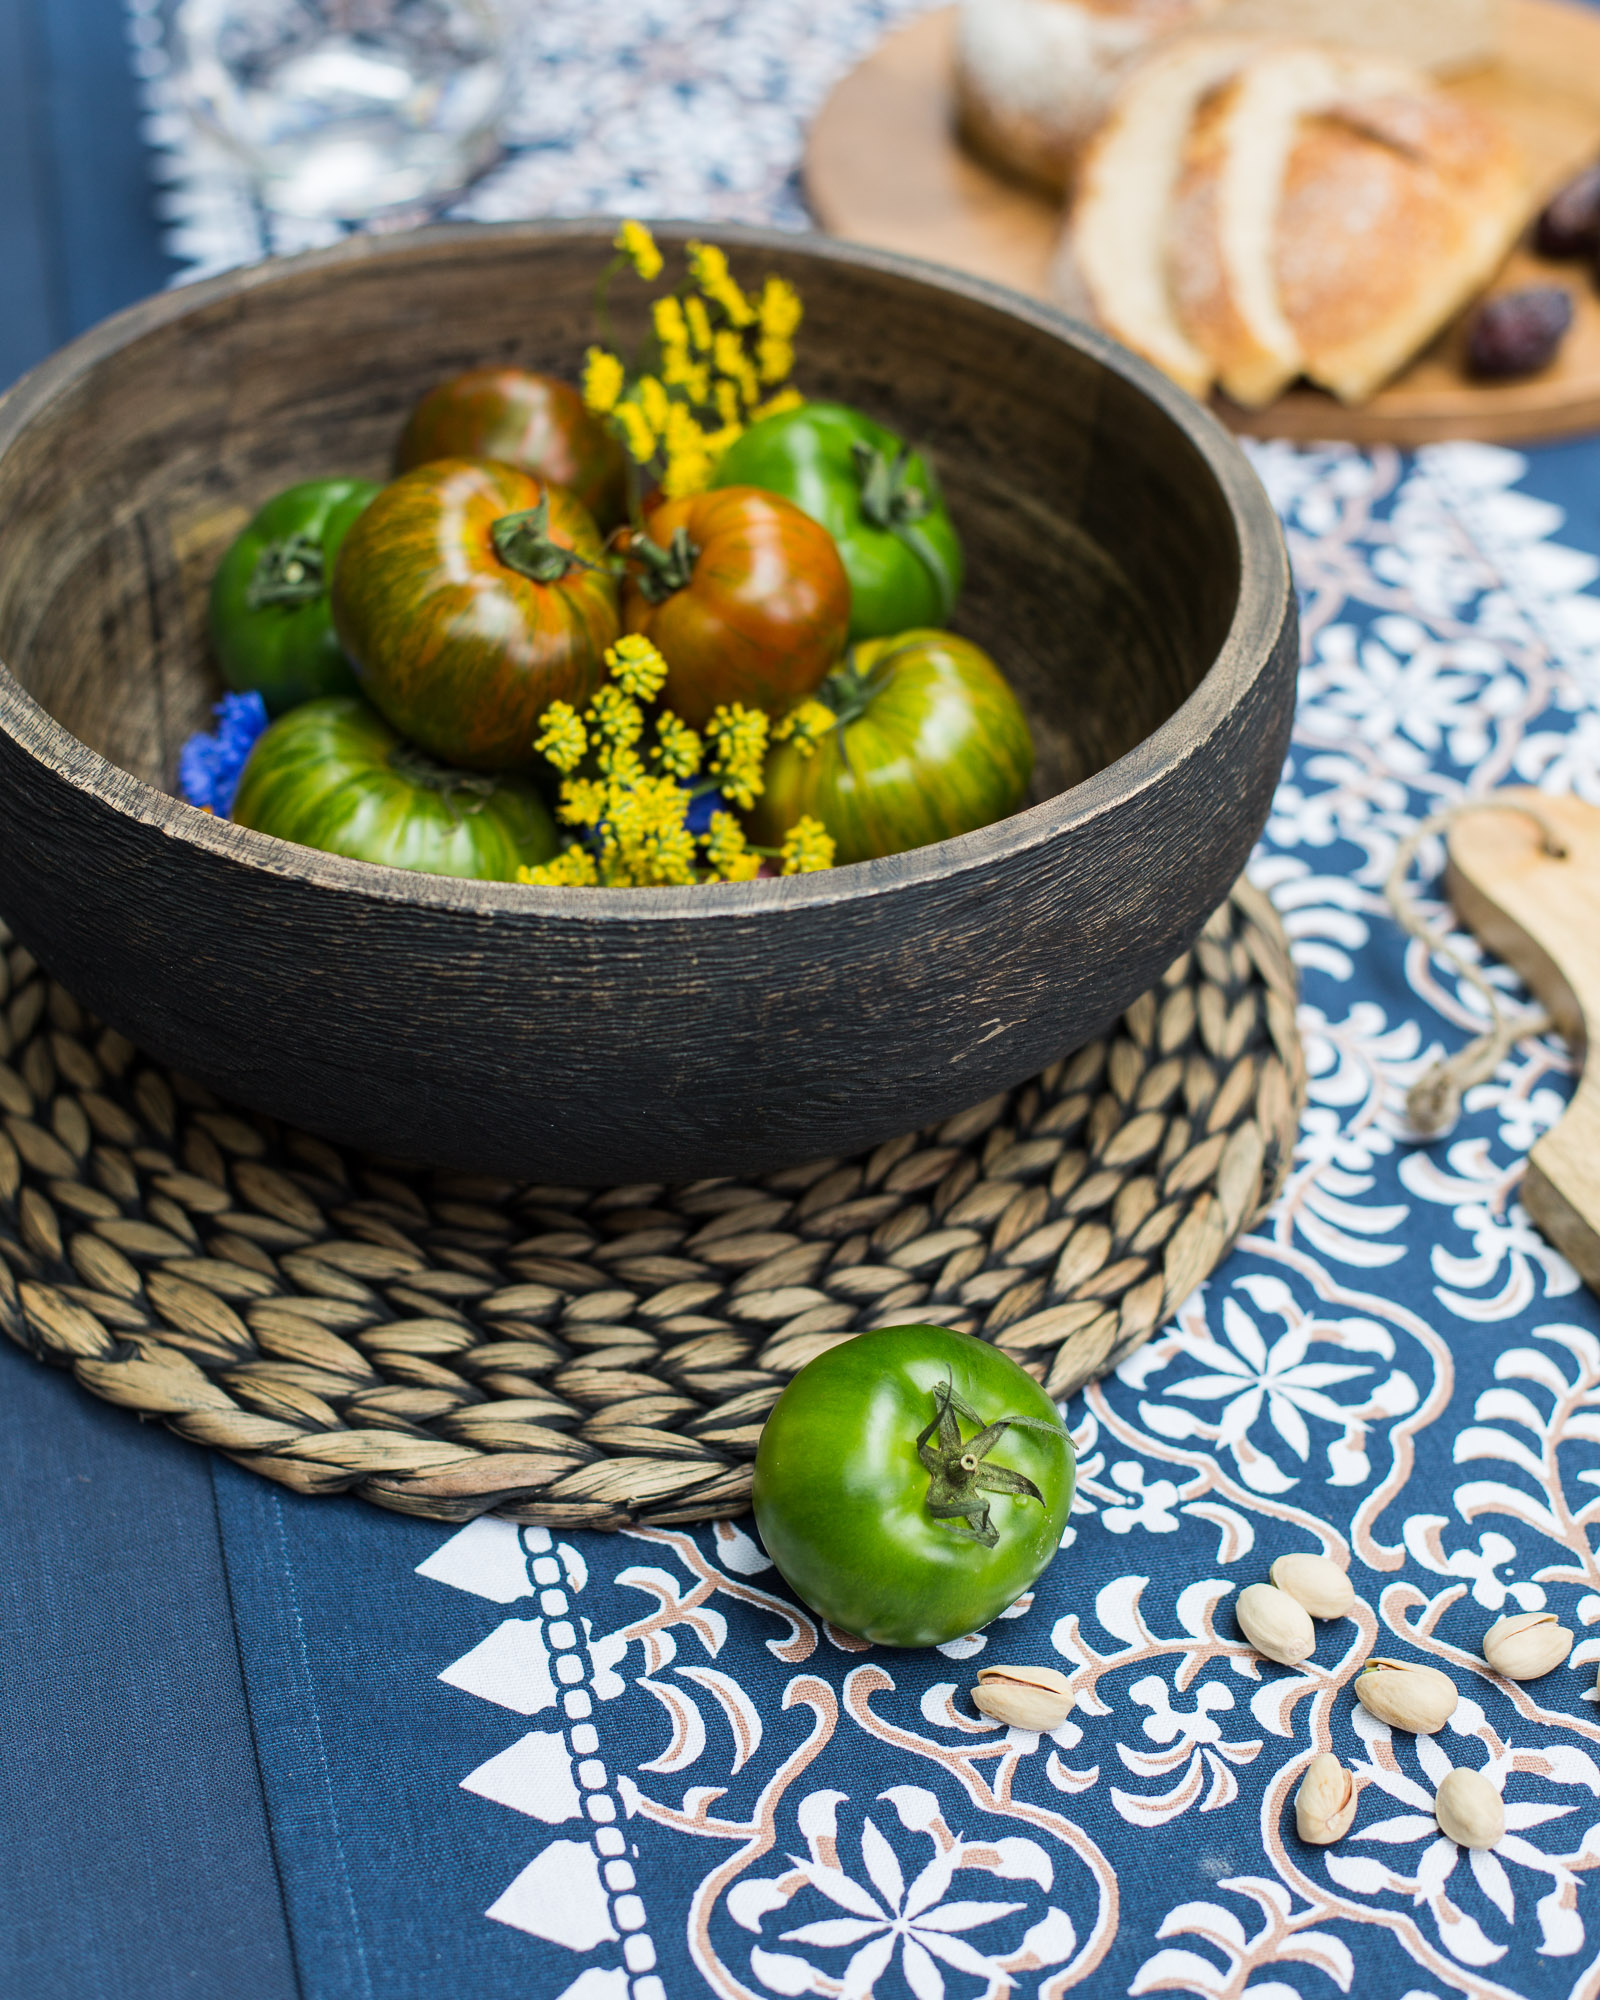 Dress your table with trans-seasonal linens that allow for effortless mixing and matching, have a timeless yet rustic feel and a simple wash and wear element. Shop: serving bowl, placemat and tablecloth.